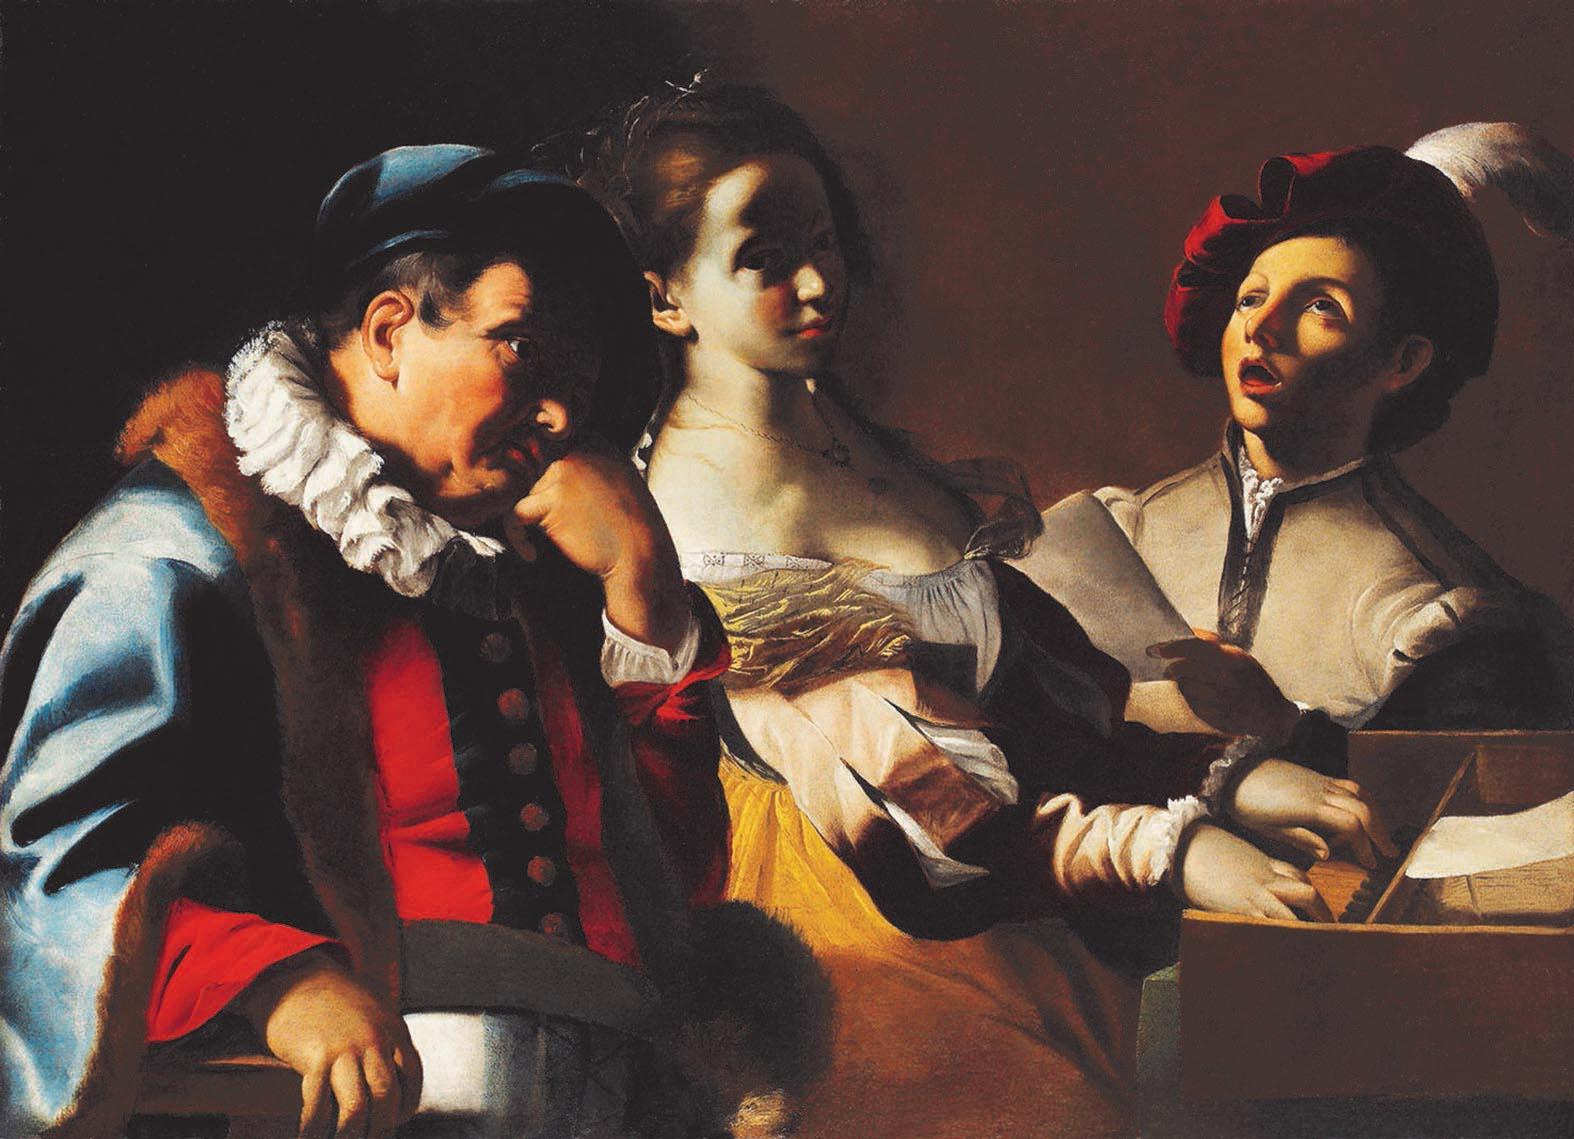 Concertino with clavicord player, private collection